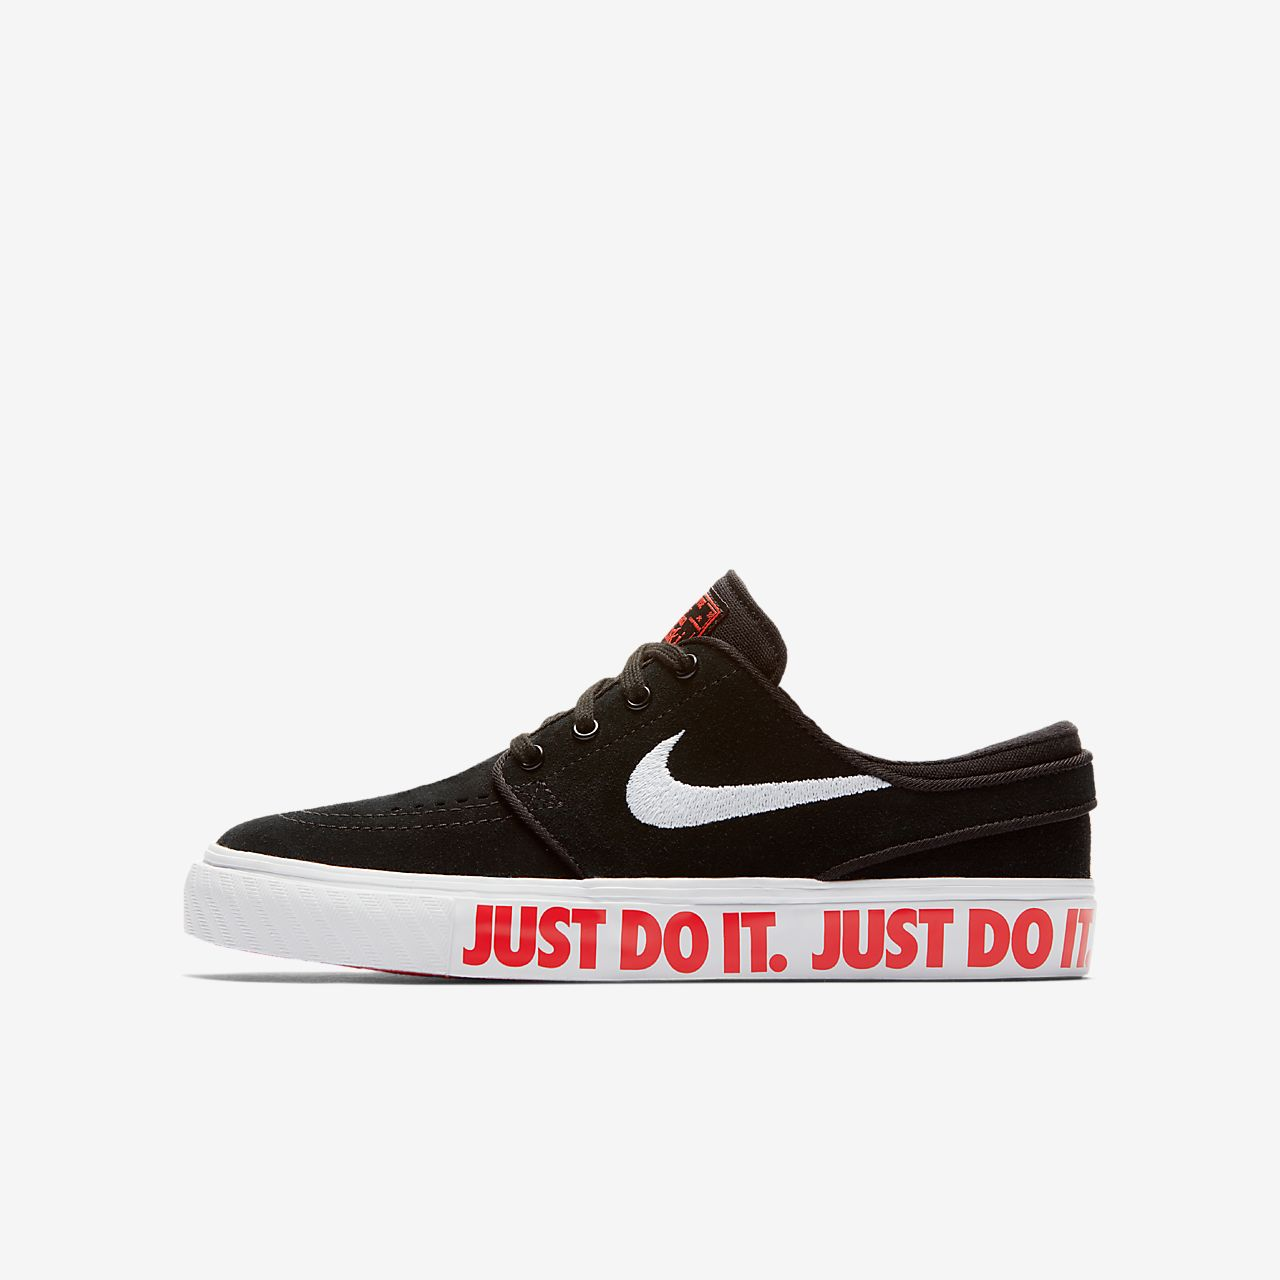 Nike. Just Do It. Nike DK